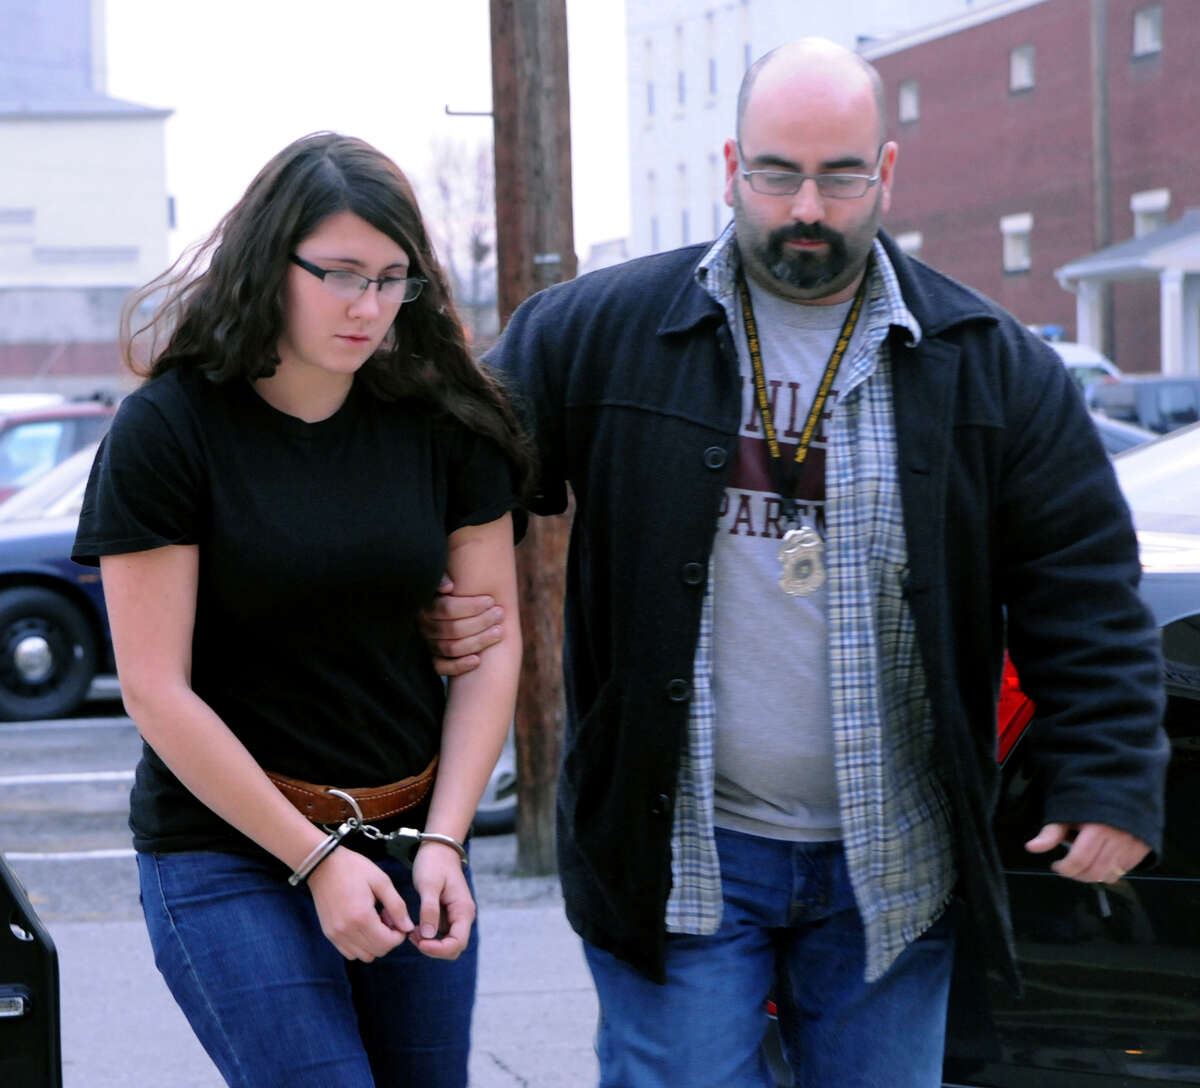 Craigslist killer Miranda Barbour admitted she and her husband killed a man they met through Craigslist in November 2013. Barbour claims to have participated in murders in Texas, North Carolina and California. She claims the killings were done as part of her involvement in a satanic cult.